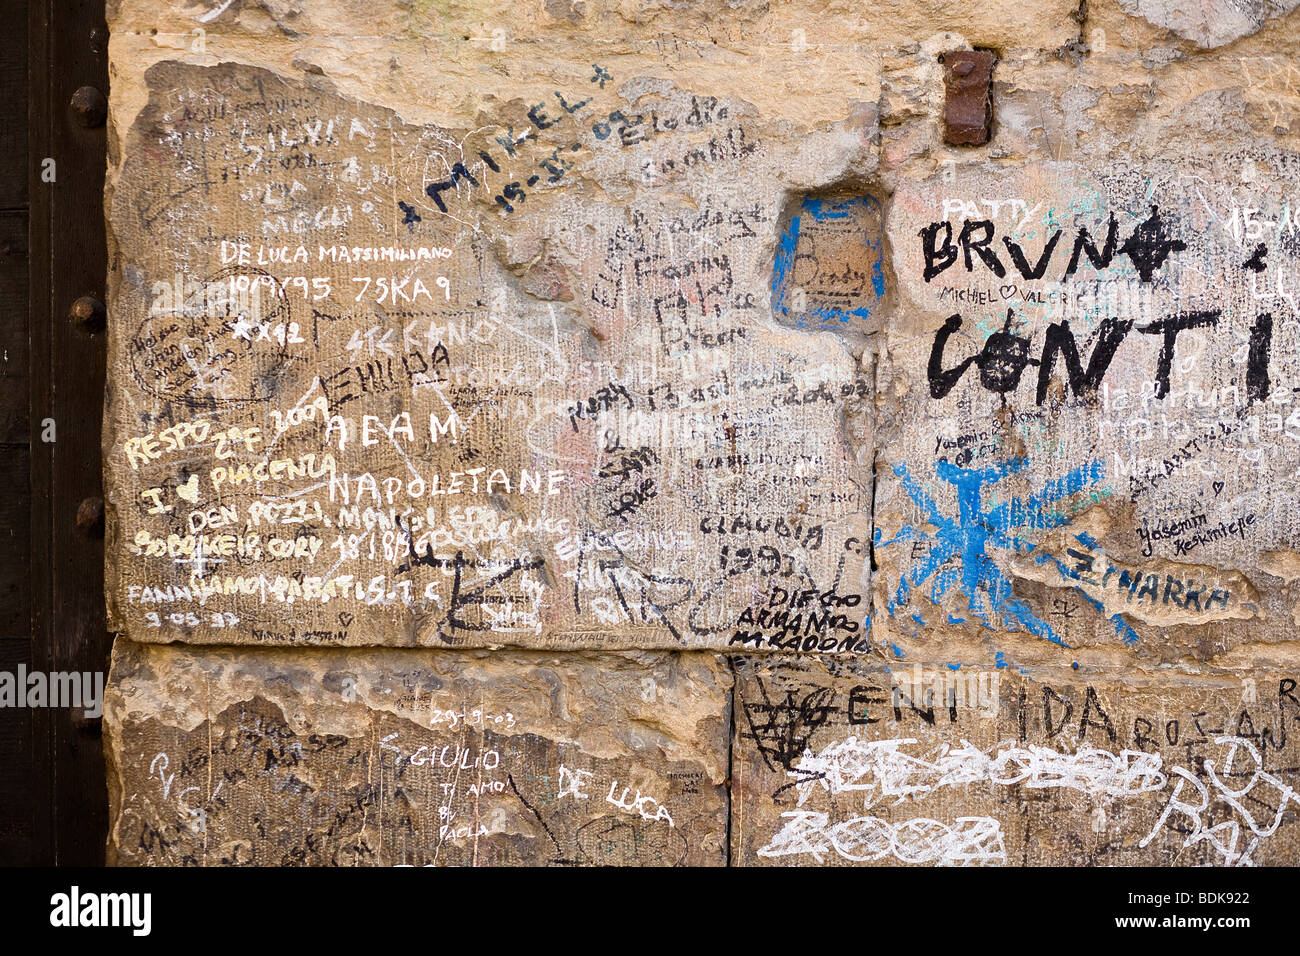 Graffiti on a Wall, Ponte Vecchio, Florence, Italy - Stock Image